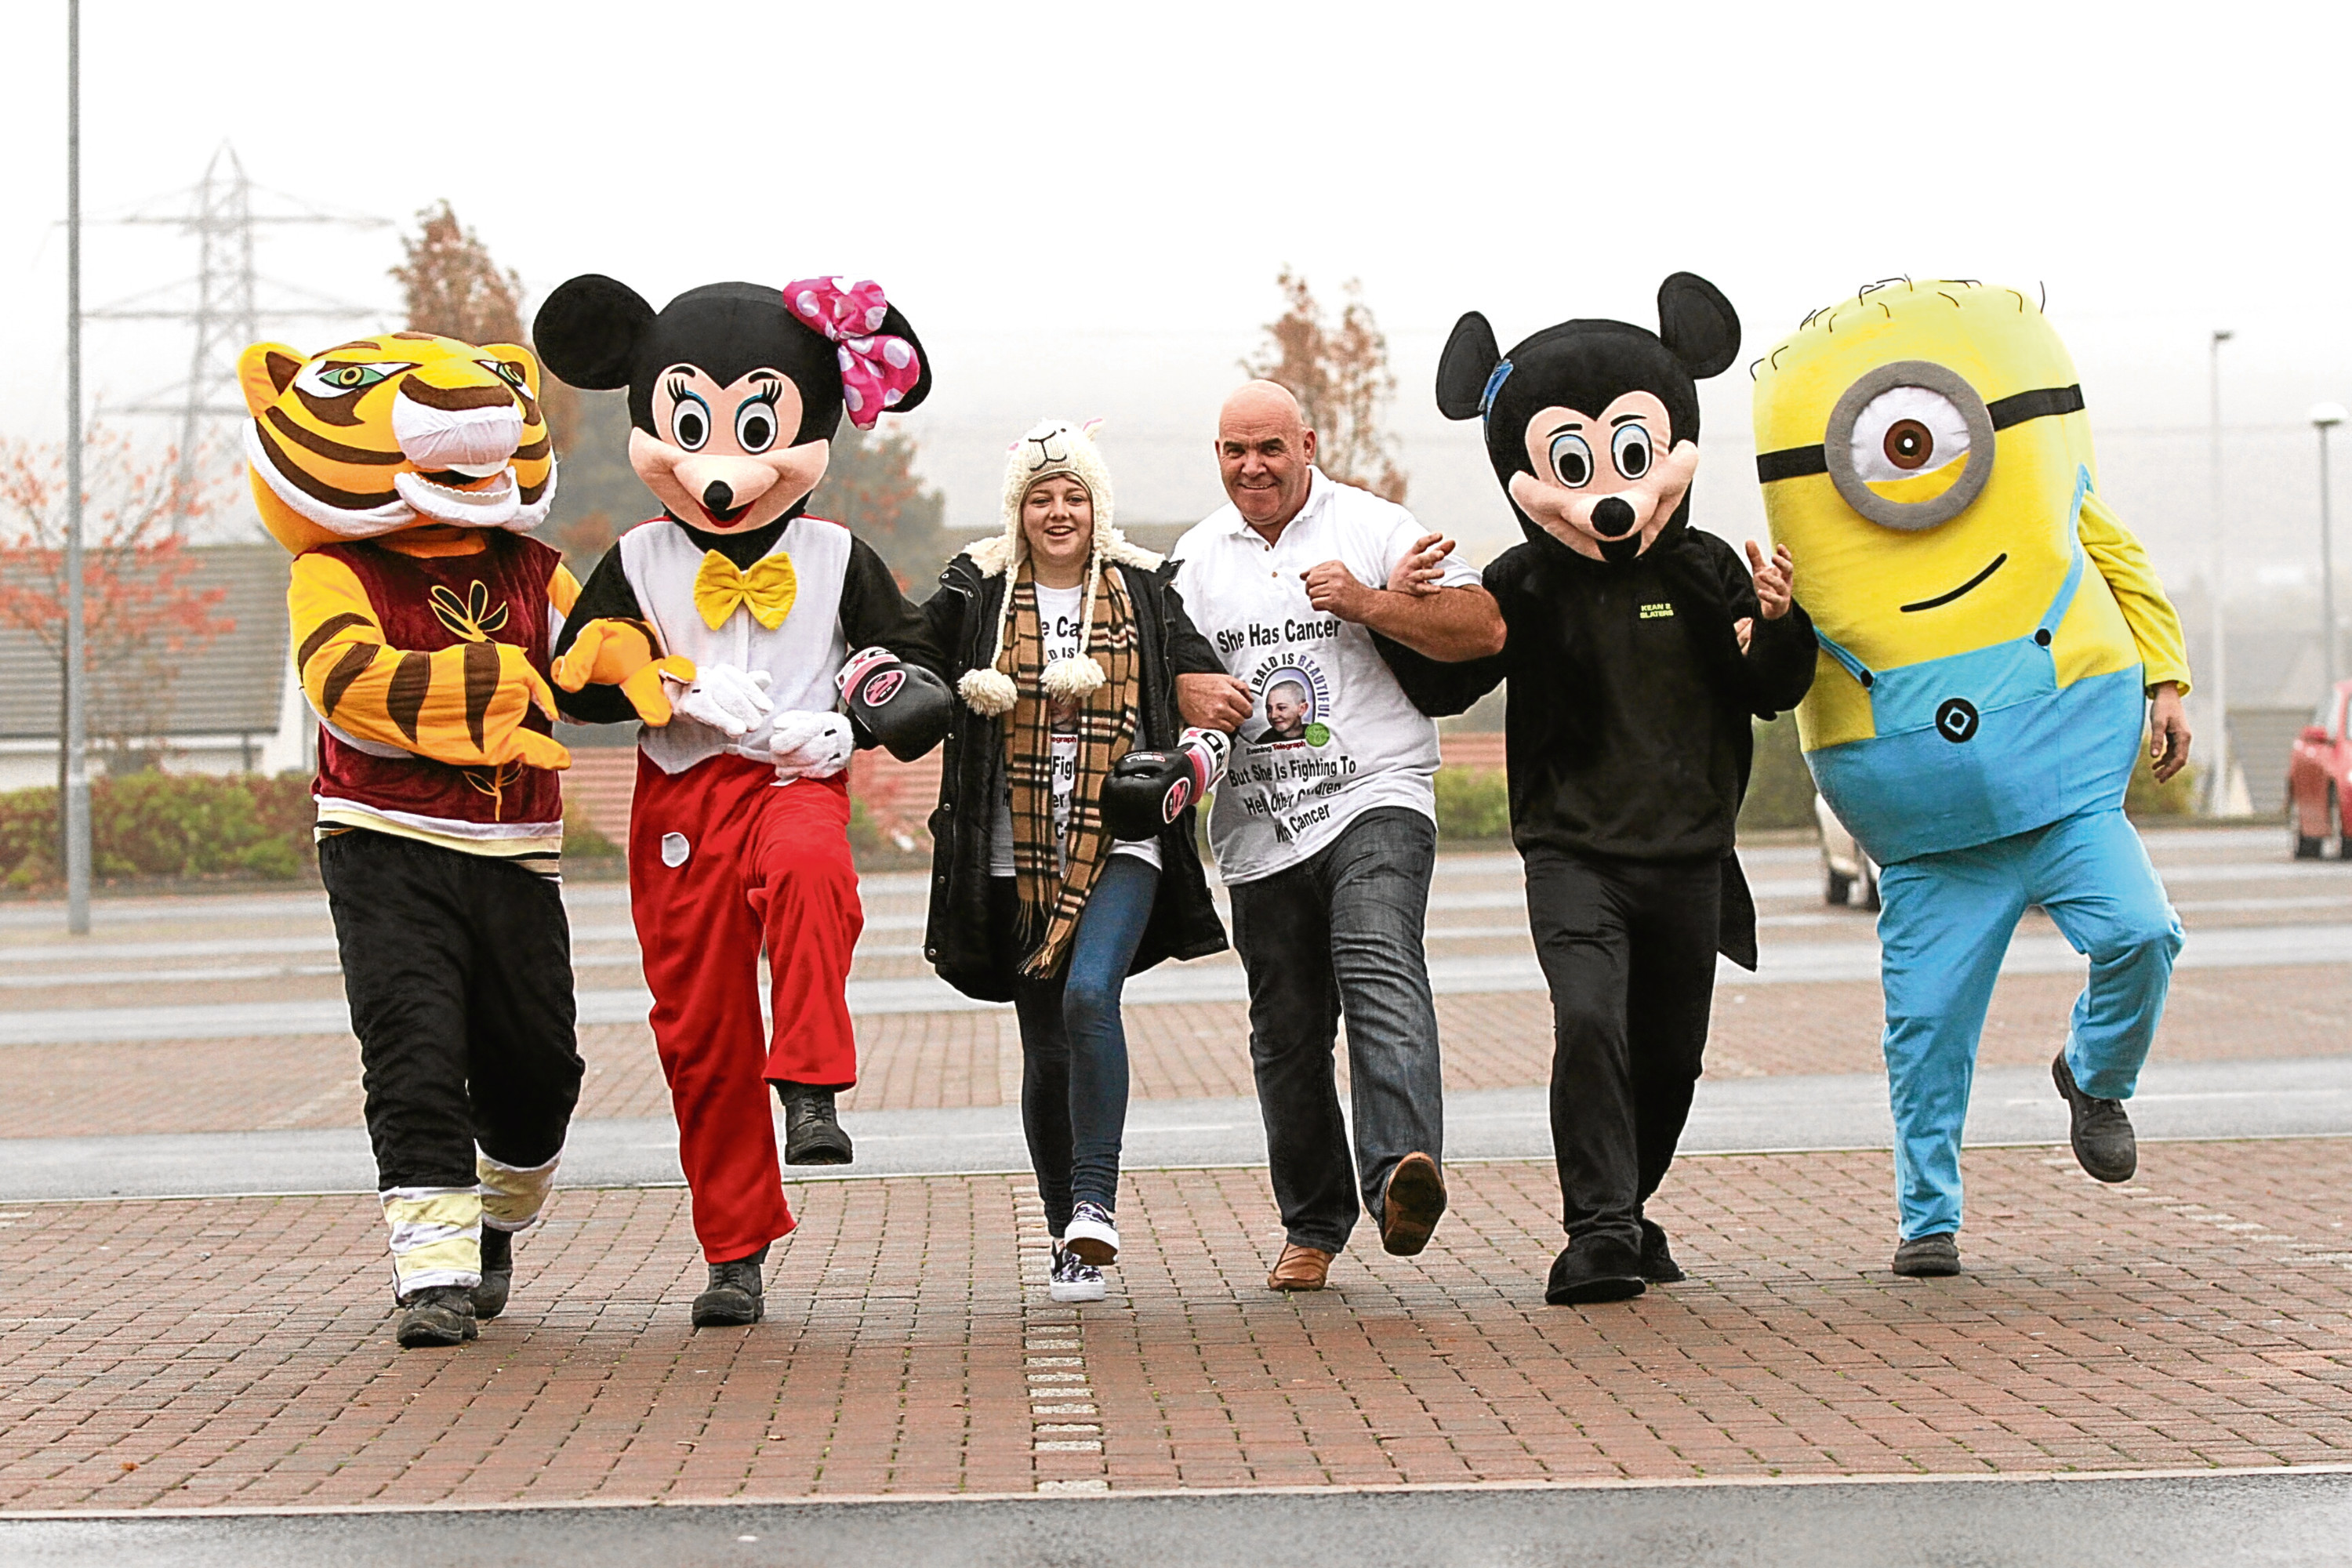 Charlie with cancer survivor Megan Fletcher joined by Tigress, Minnie and Mickey Mouse and a Minion, in the lead-up to a previous year's event